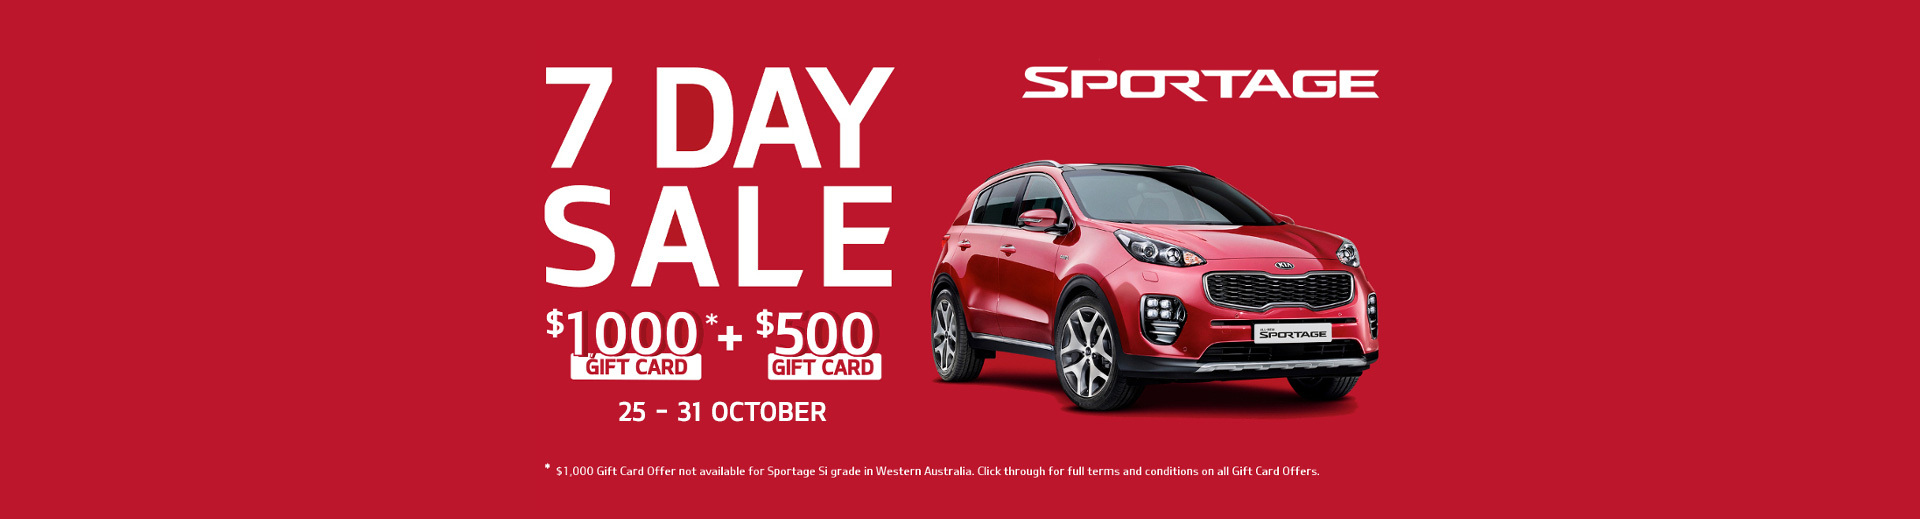 Kia National Offer - 7 Day Sale